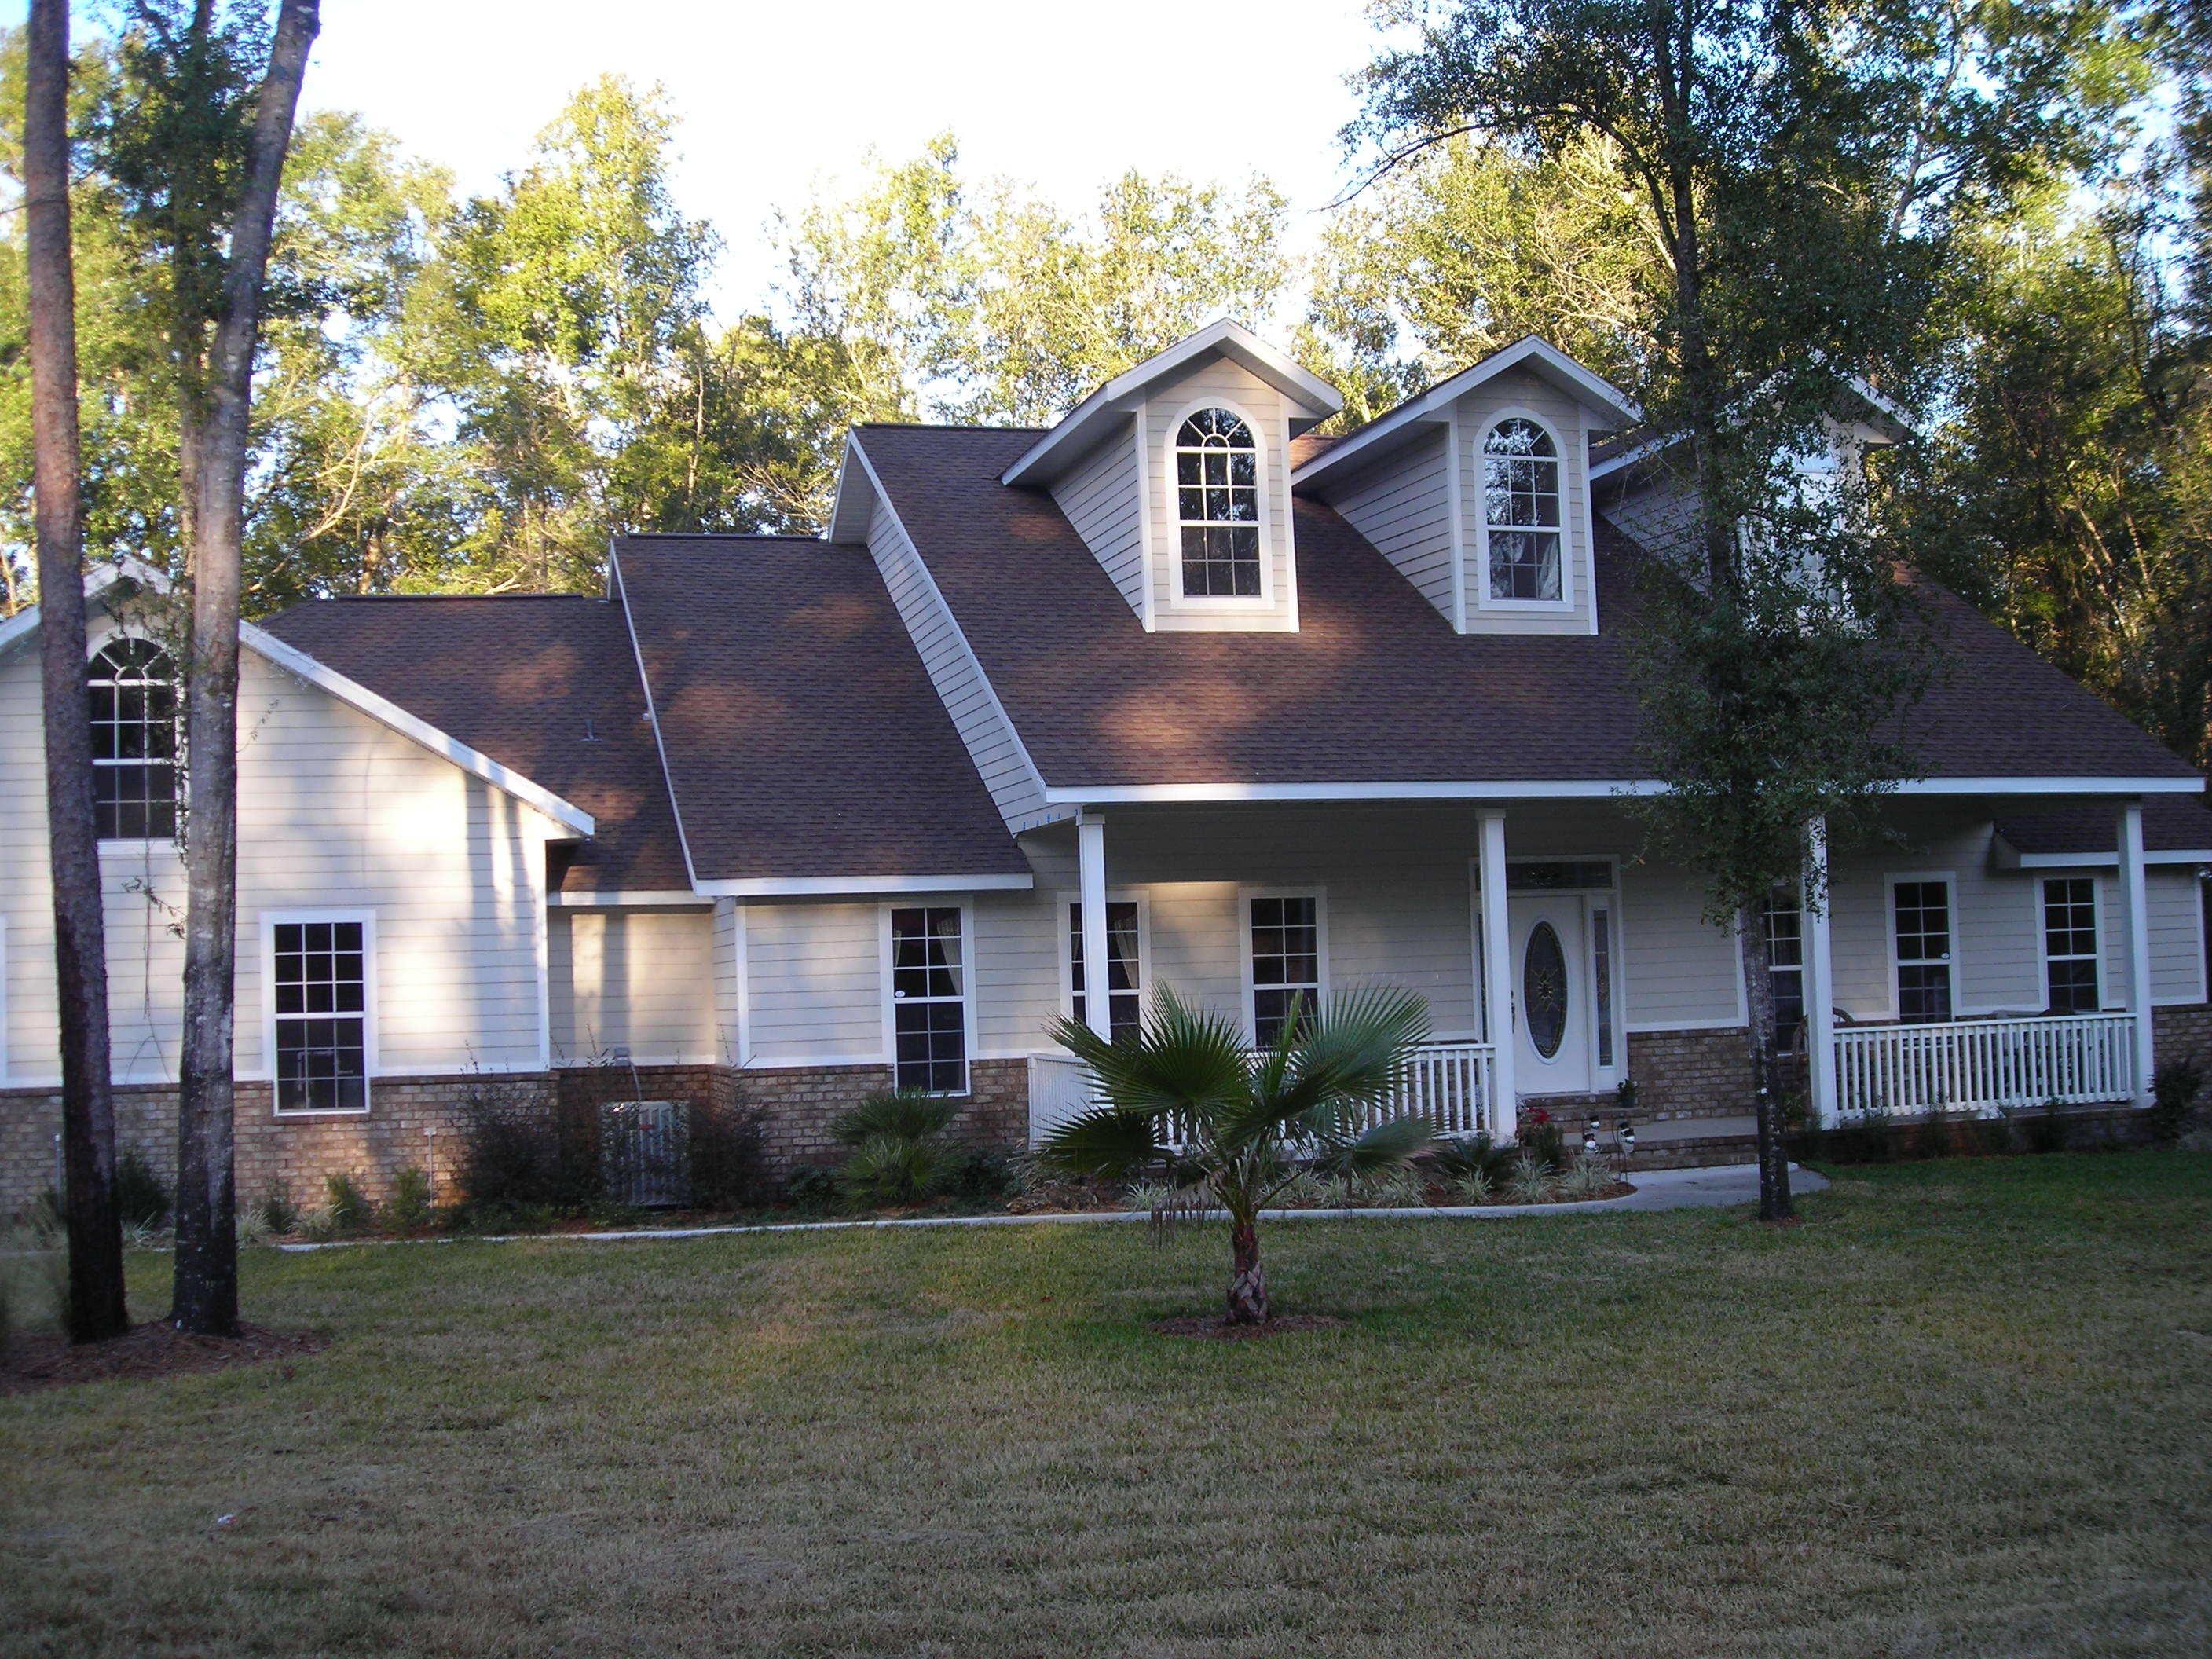 Daniel Crapps Agency sells Lake City Florida homes